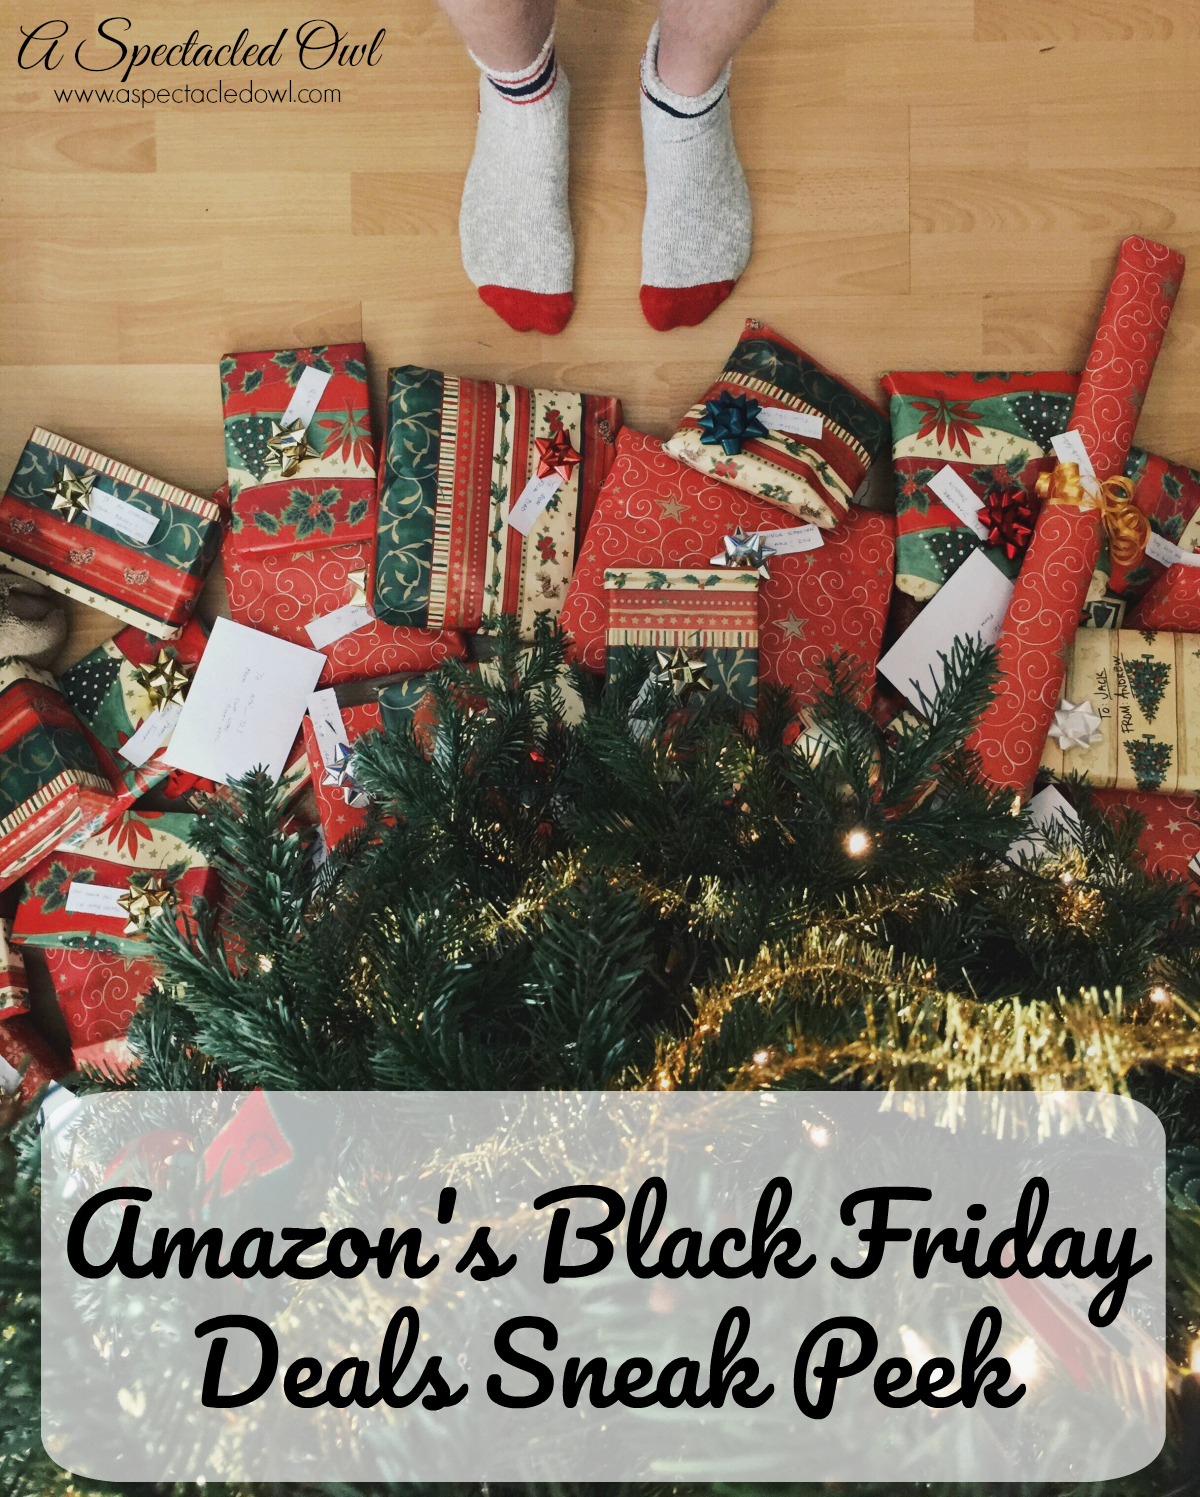 Amazon's Black Friday Deals Sneak Peek is Here